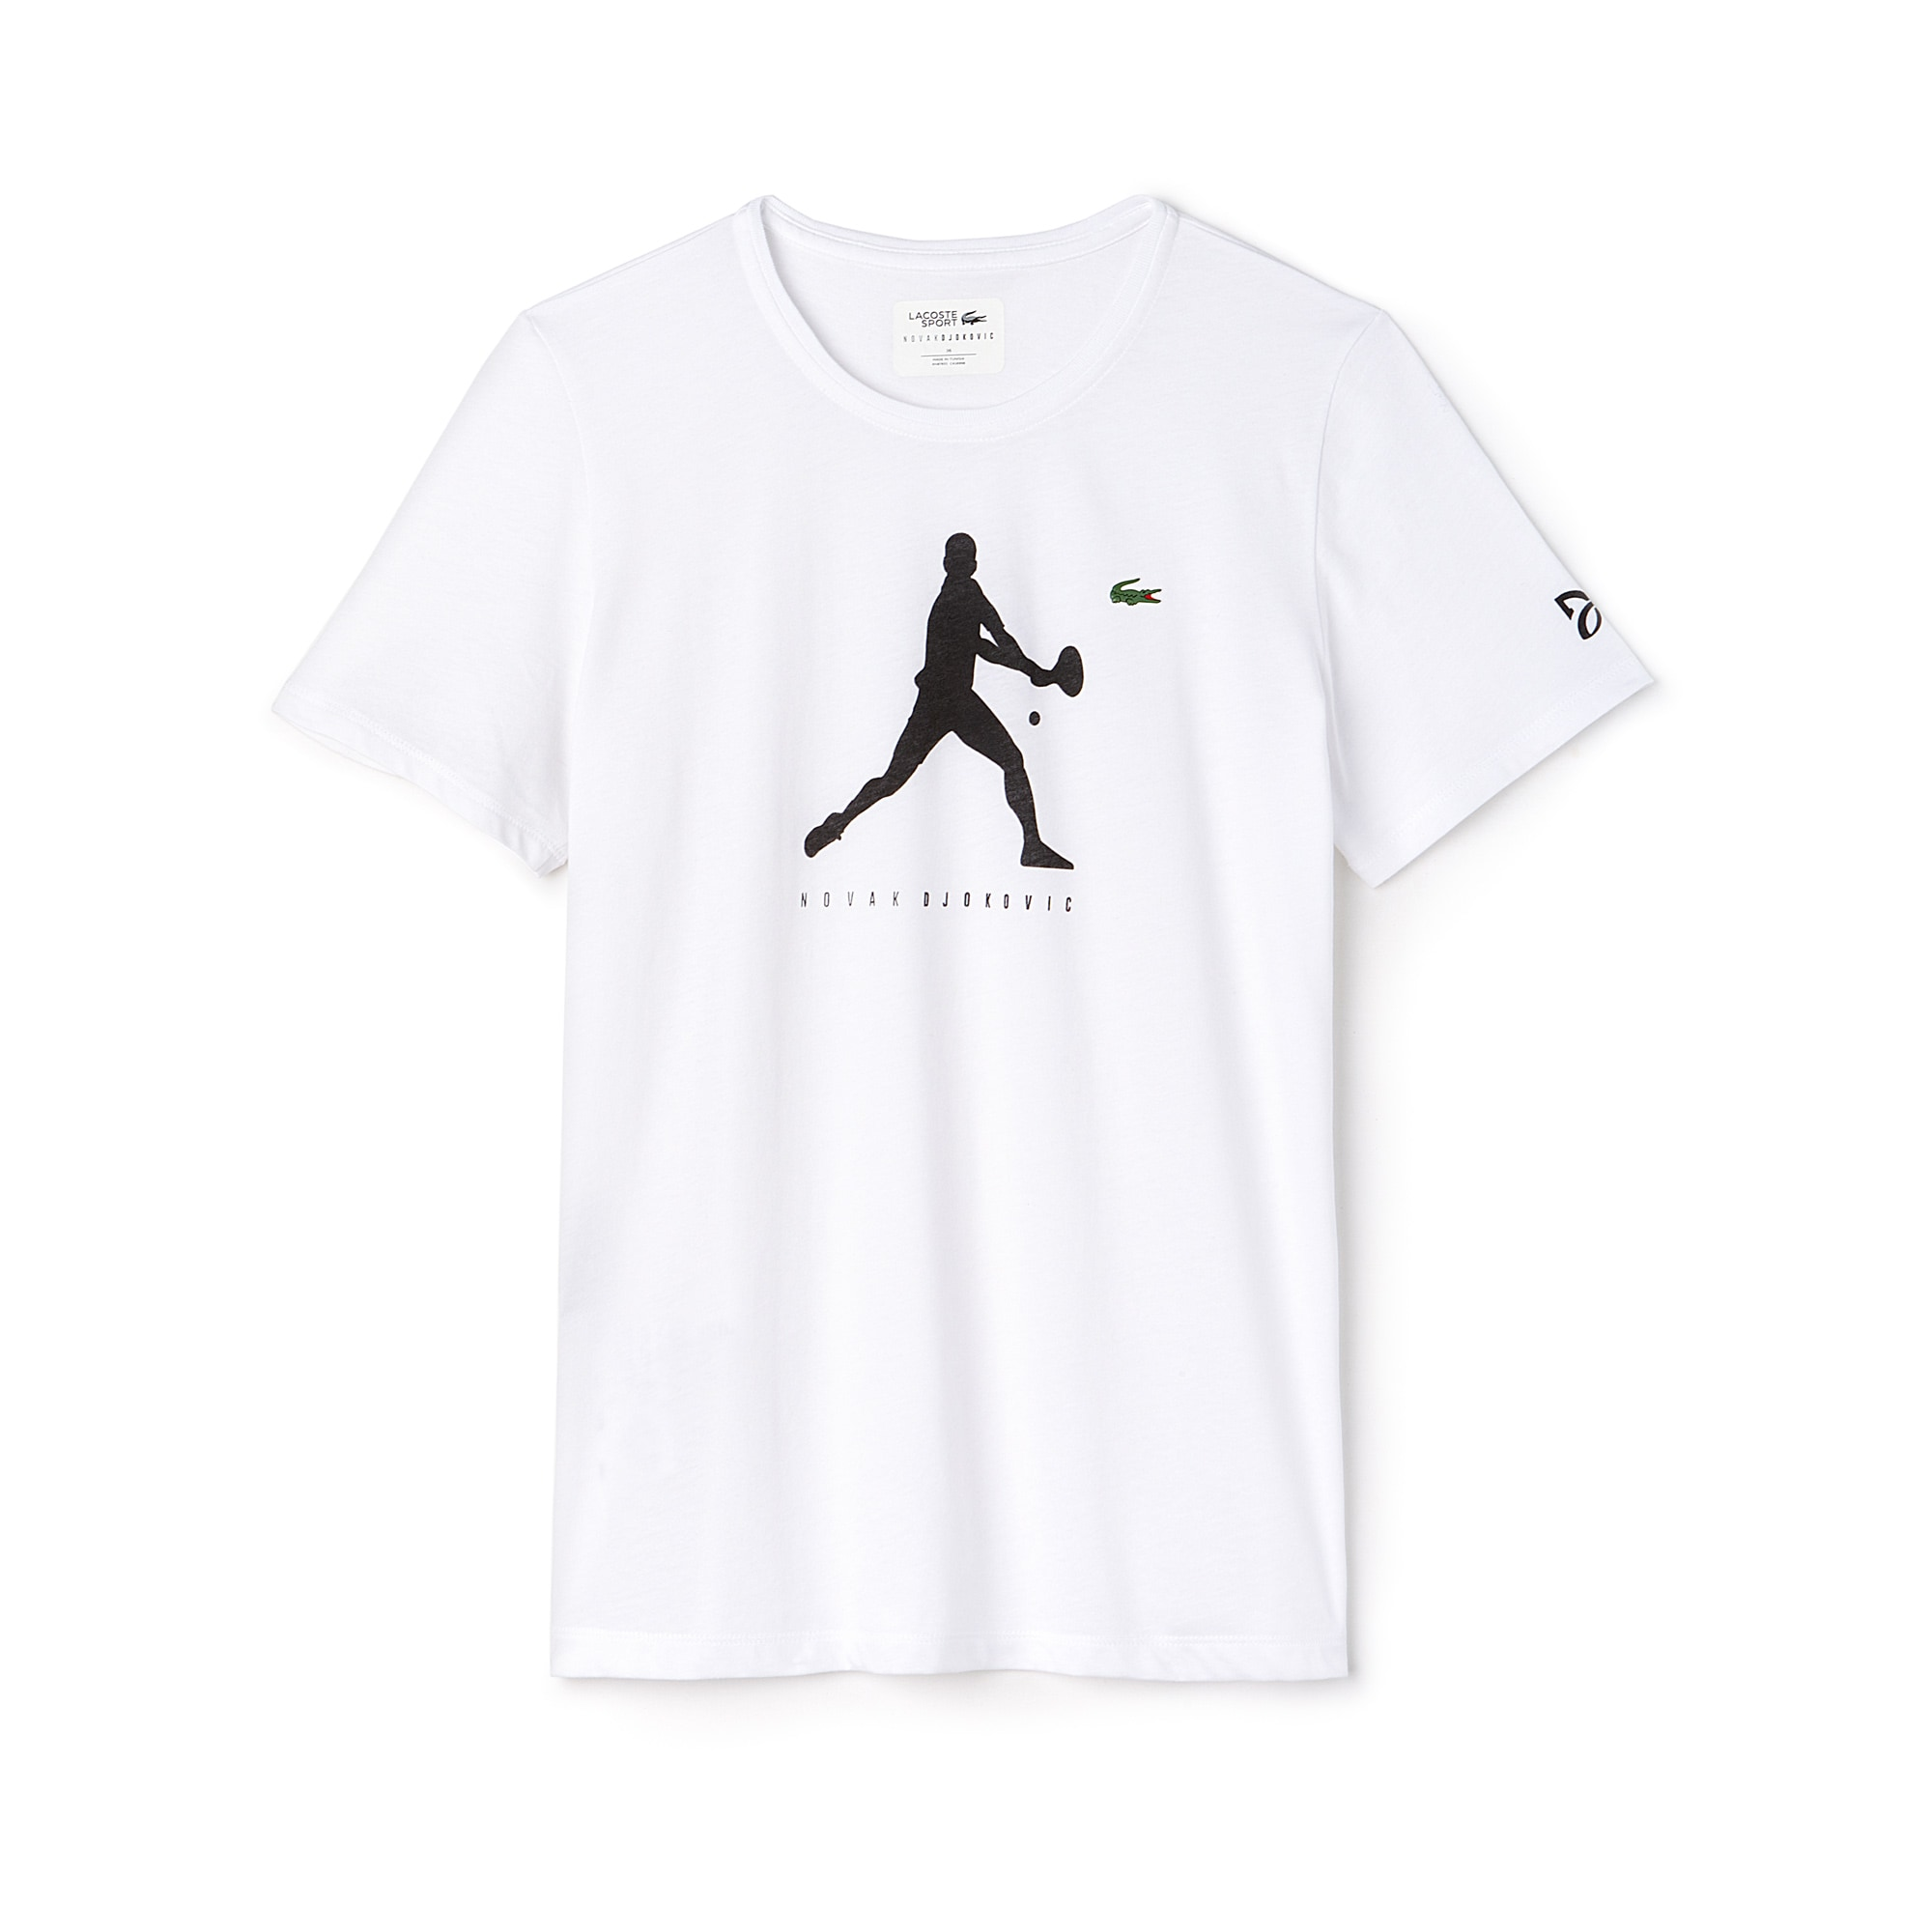 Women's Lacoste SPORT NOVAK DJOKOVIC SUPPORT WITH STYLE COLLECTION Crew Neck Print Jersey T-shirt